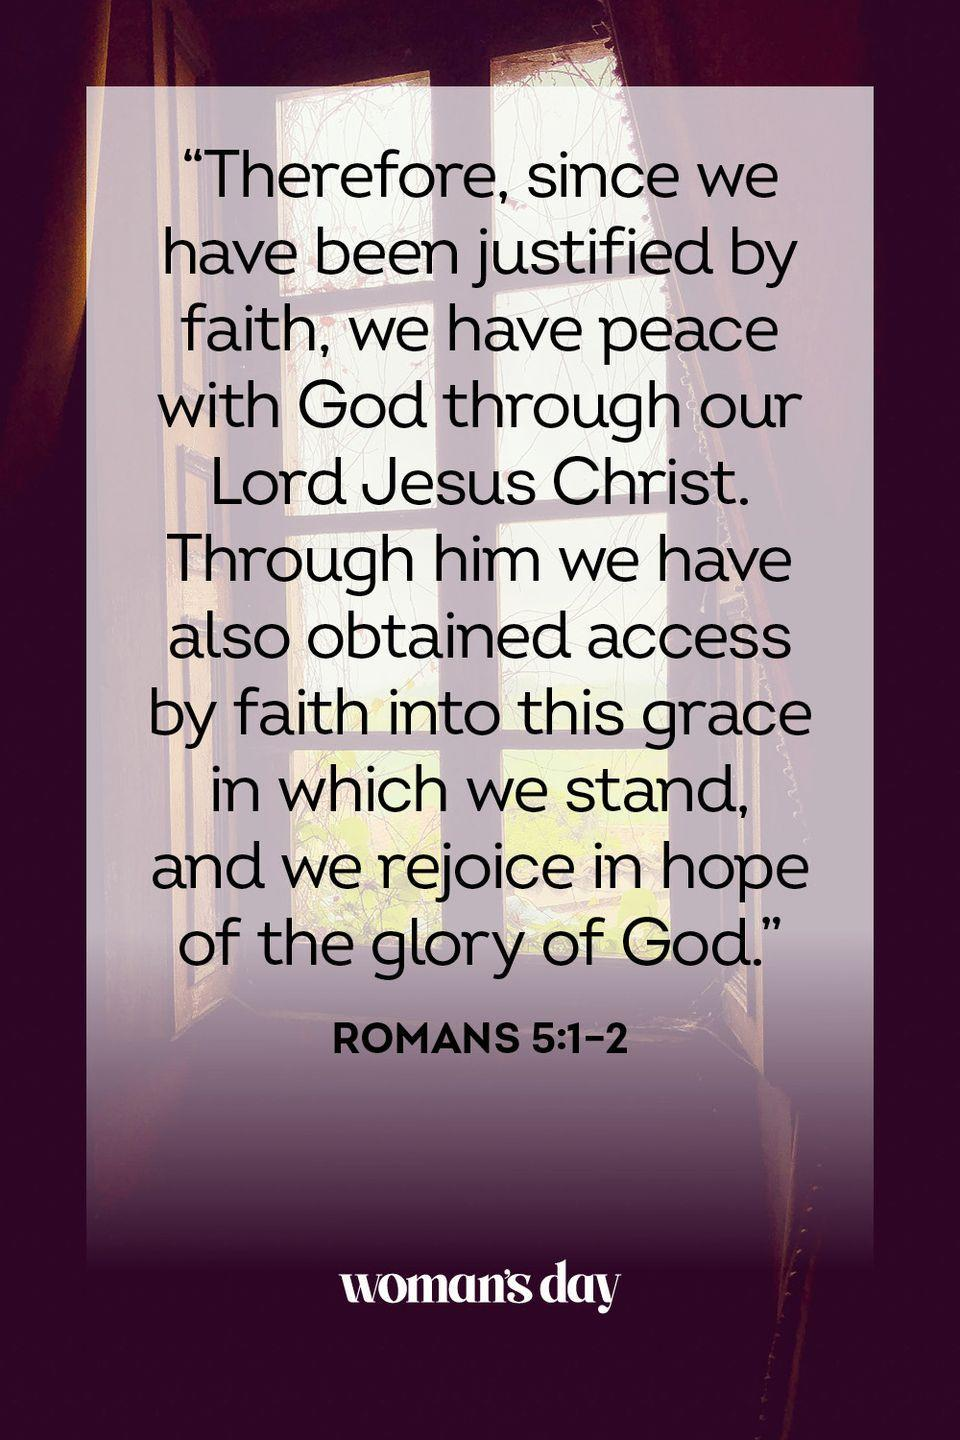 "<p>""Therefore, since we have been justified by faith, we have peace with God through ourLord Jesus Christ. Through him we have also obtained access by faith into this grace in which we stand, and we rejoice in hope of the glory of God.""</p><p><strong>The Good News: </strong>We stand firm in our faith and in the gift of grace freely granted us through Jesus Christ our Lord.</p>"